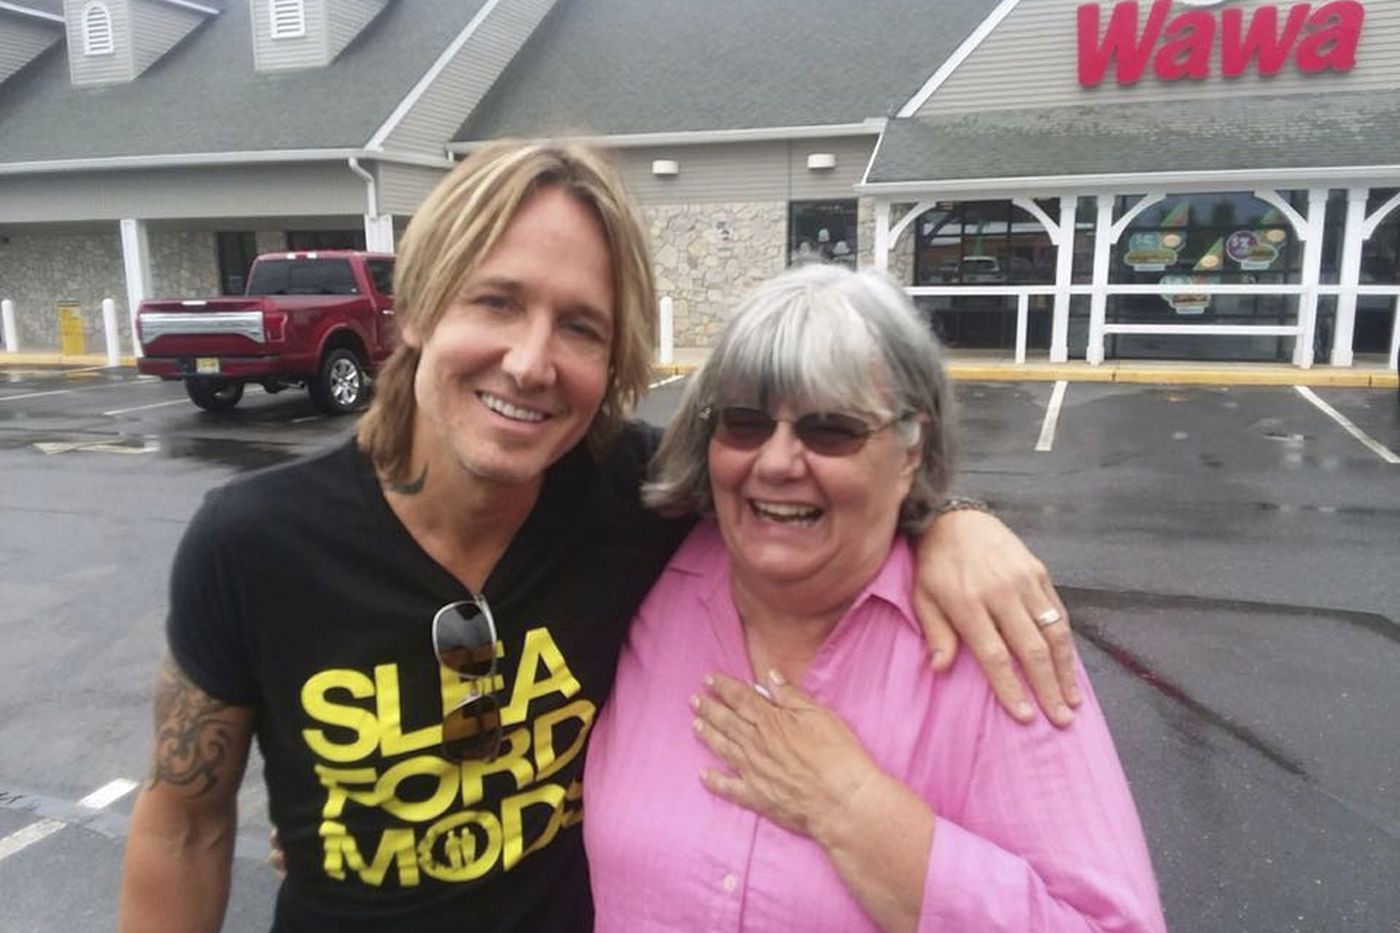 New Jersey woman spots Keith Urban cash for snacks at Wawa